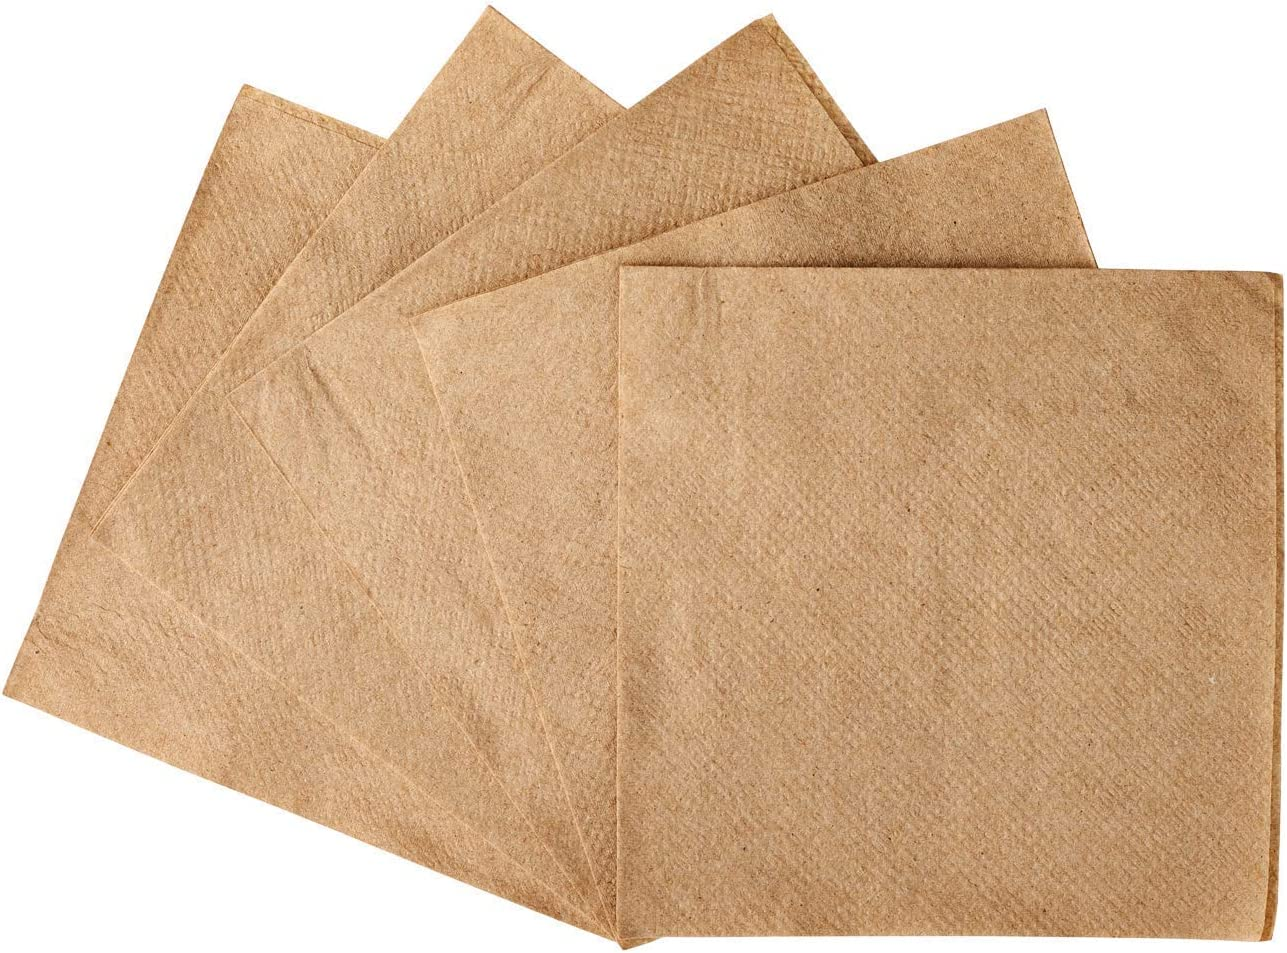 """Zenco Beverage and Cocktail Napkins - 1000 Pack 4.5"""" x 4.5"""" - Ideal for Birthday, Cocktail, Dinner, Lunch, Party, Wedding (Kraft, 1000)"""